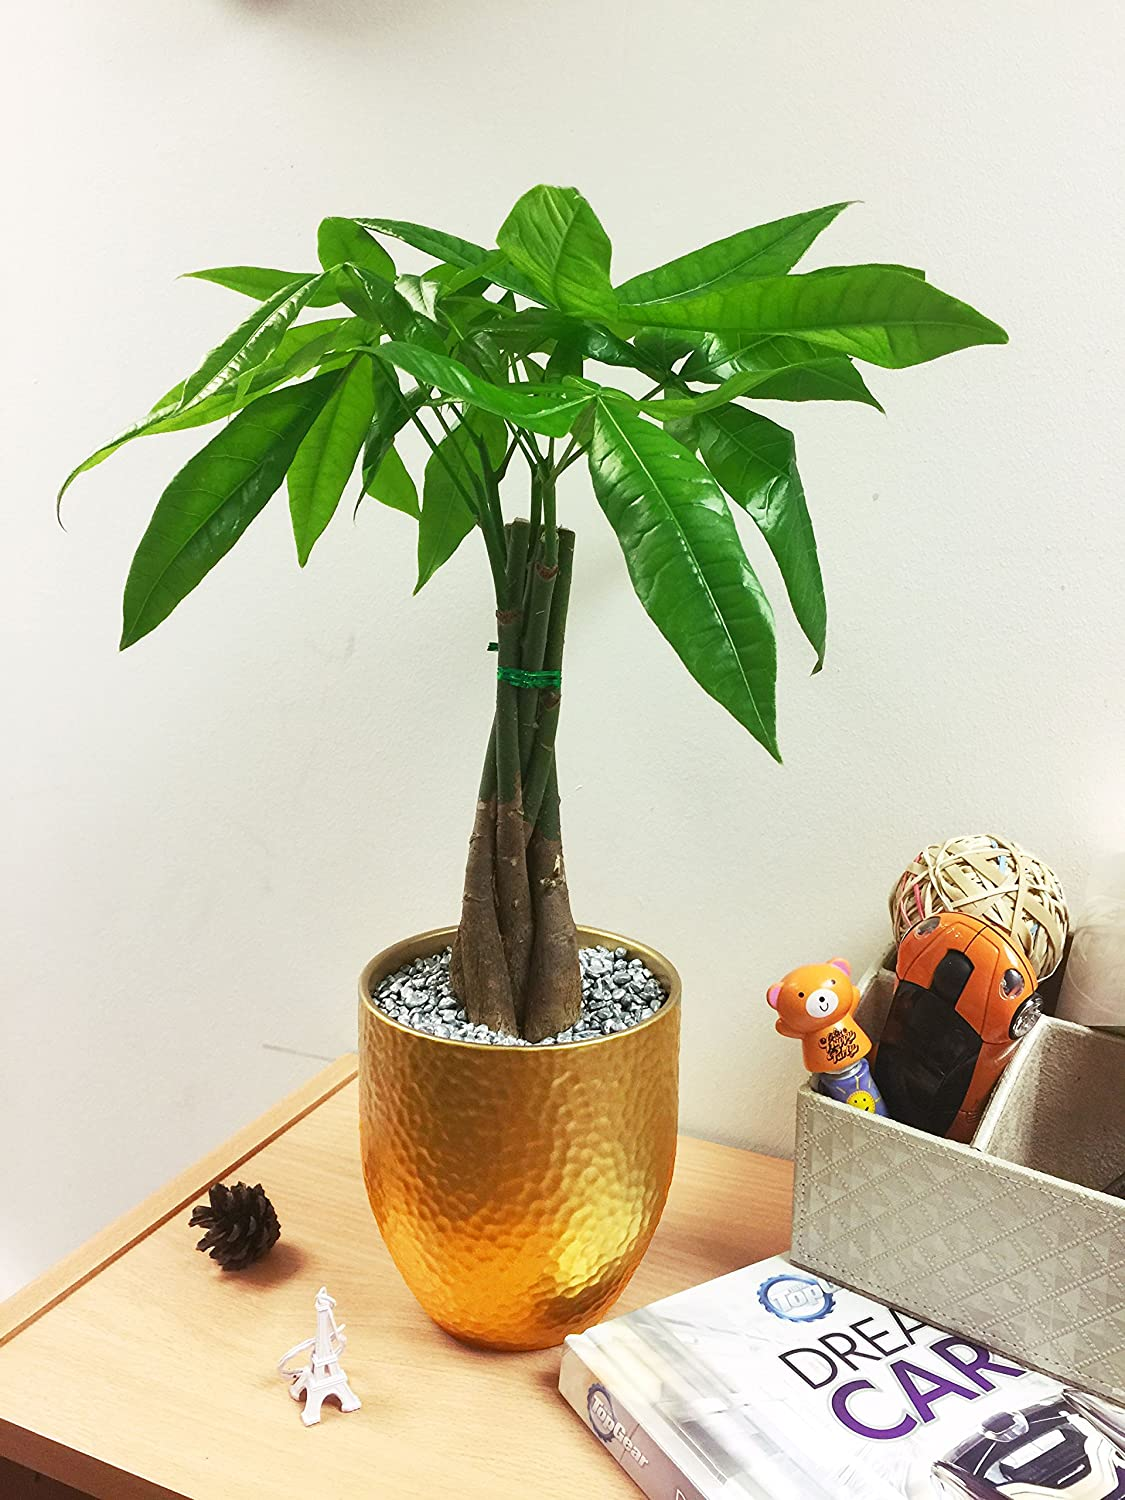 1 Luxury Elephant's Foot (Ponytail) Table Plant @ Gold Ceramic Pot Silver Top Dressing Easy Plants